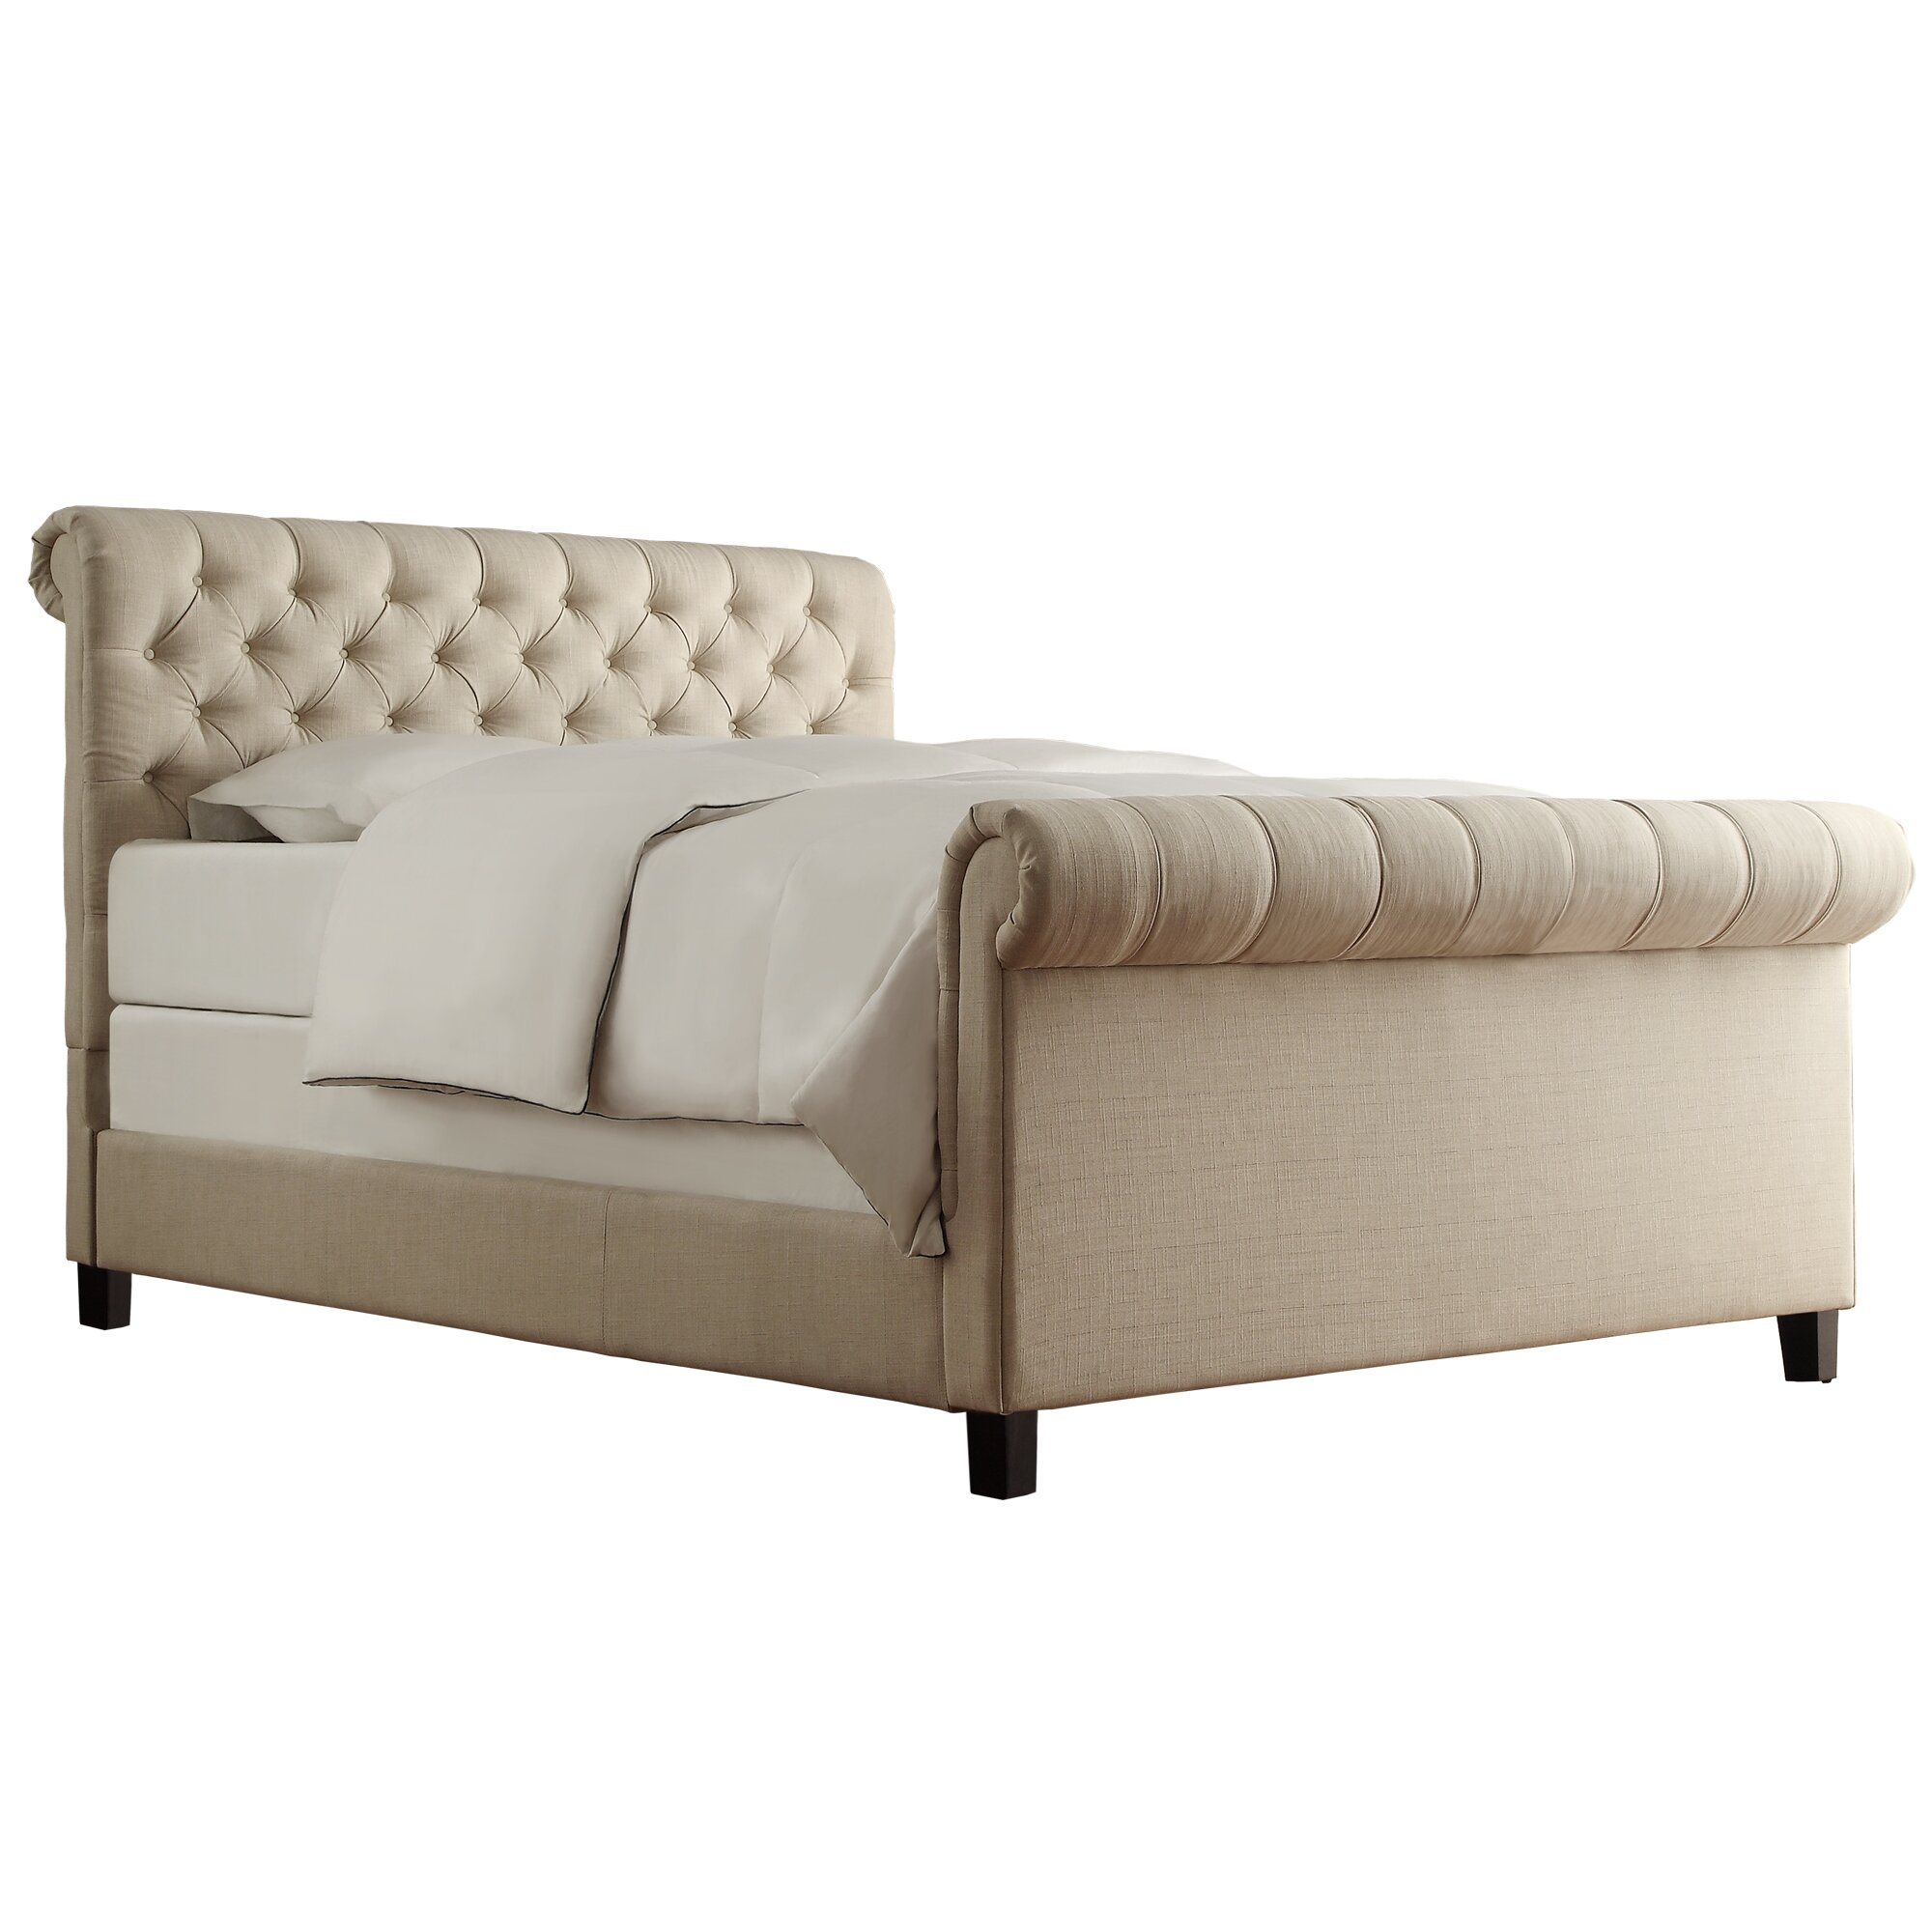 Upholstered Platform Bed : ... Wheeler Mccullers Upholstered Platform Bed & Reviews  Wayfair